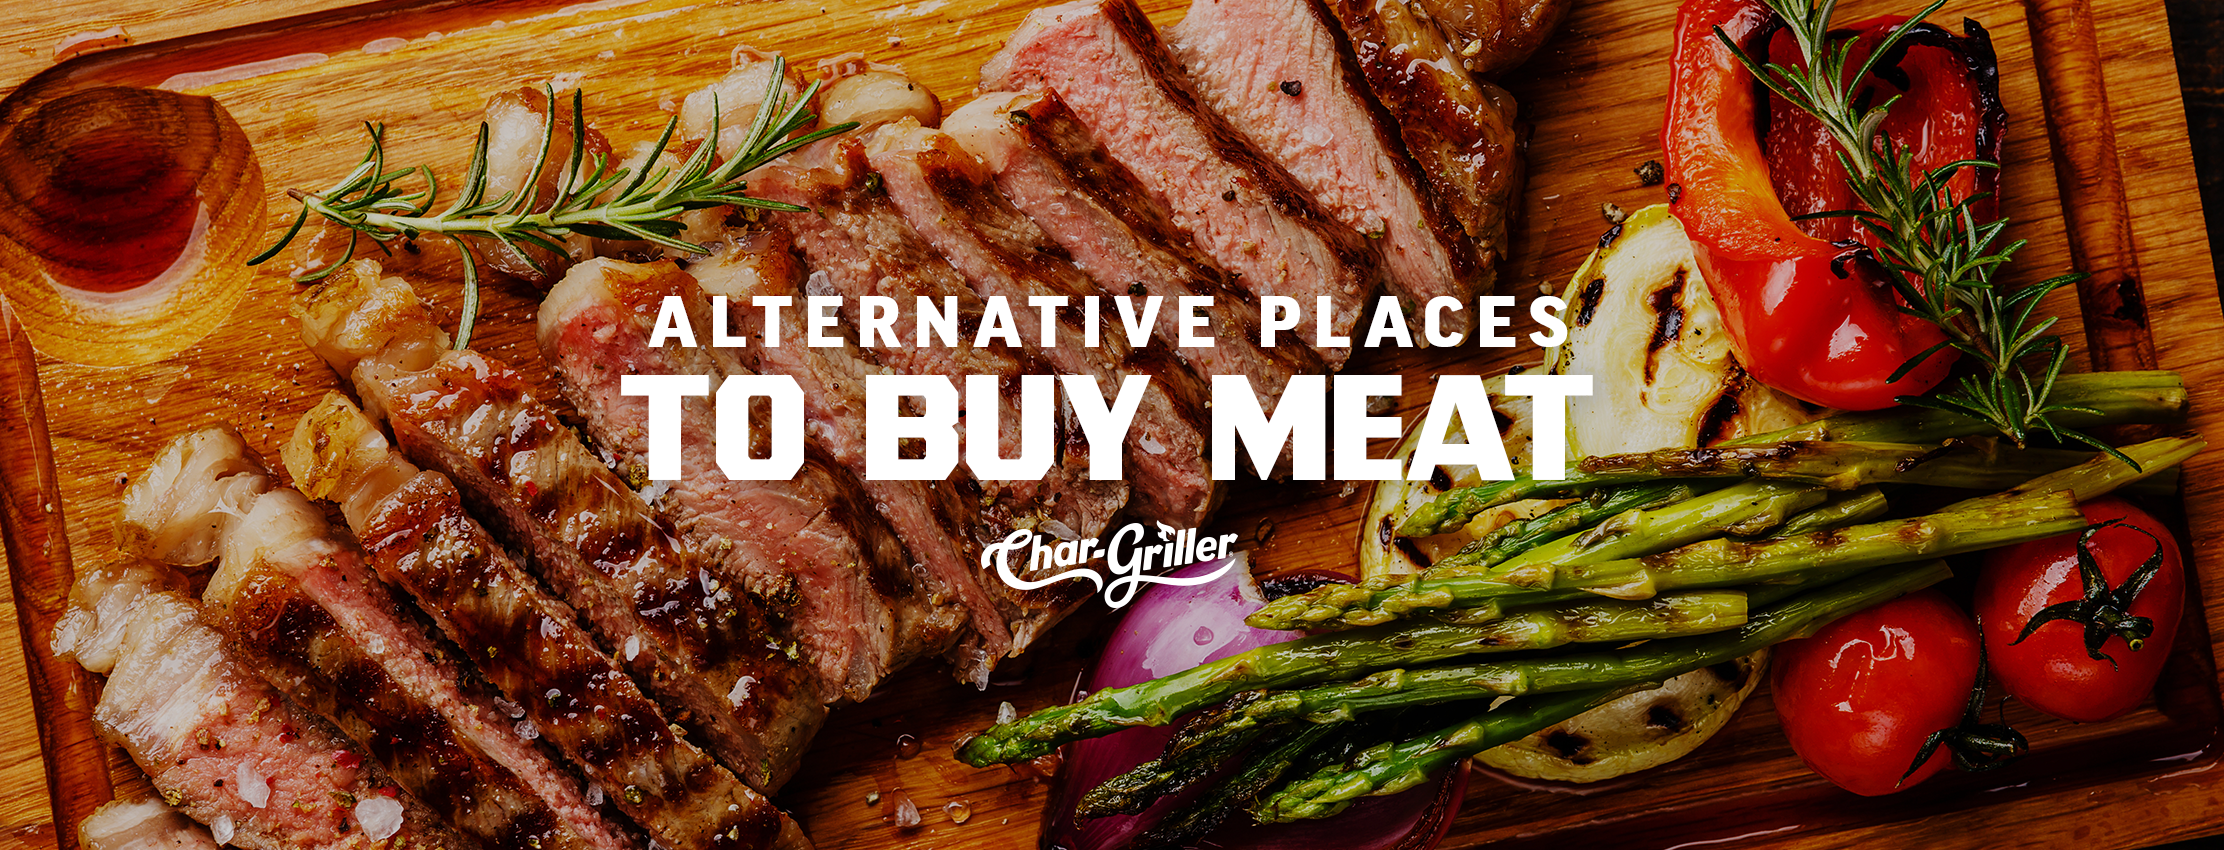 Alternative Places to Buy Meat